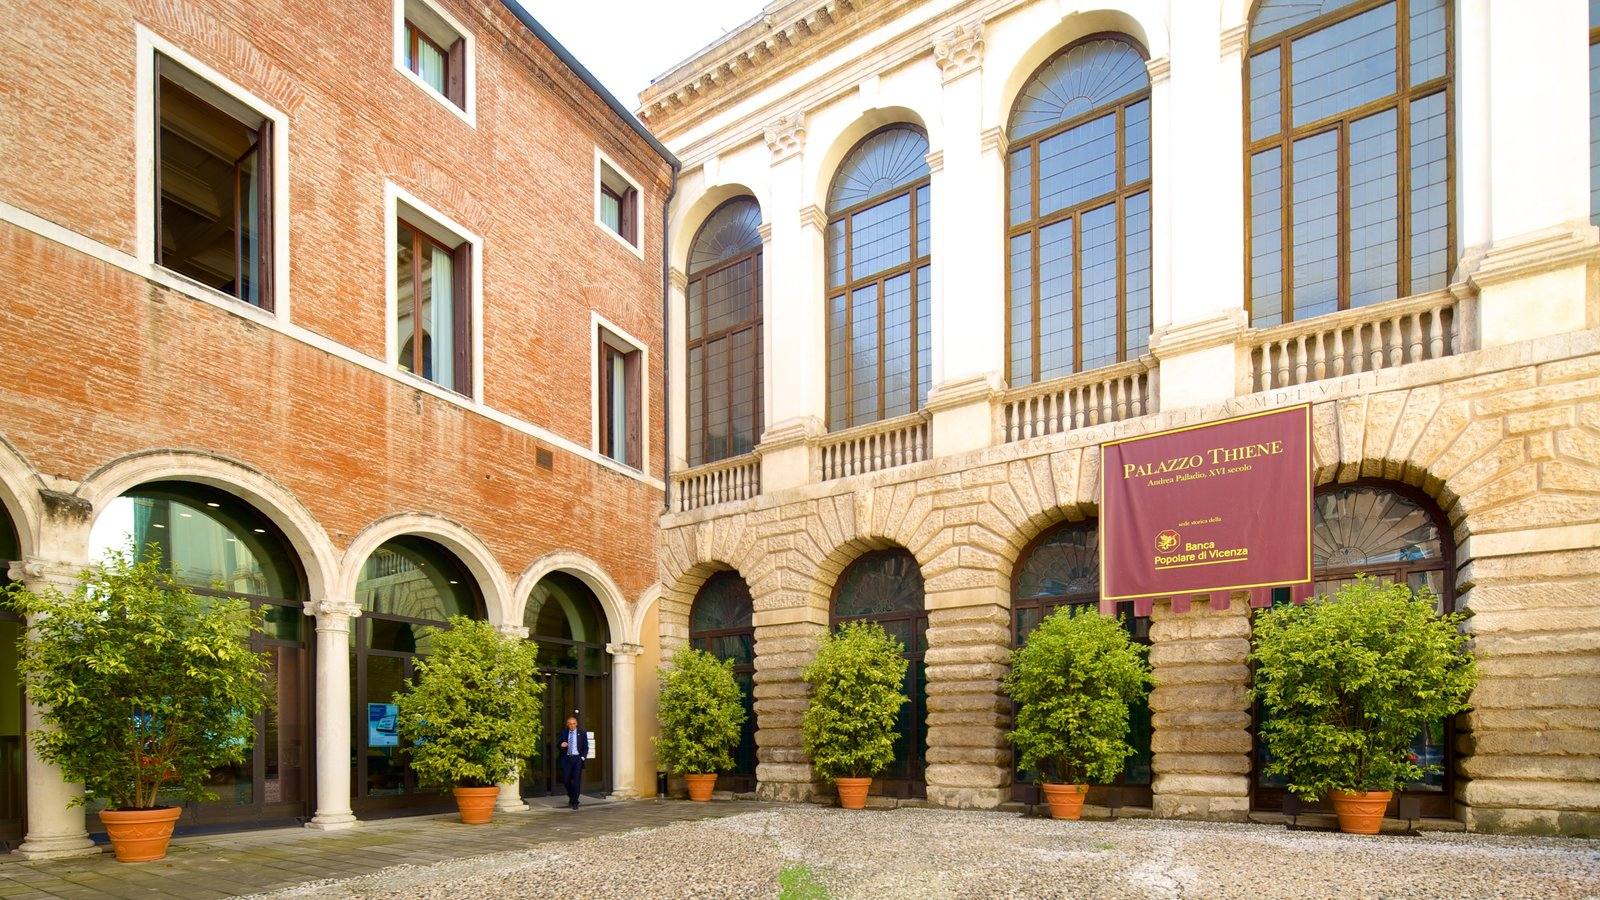 Palazzo Thiene featuring a square or plaza and street scenes